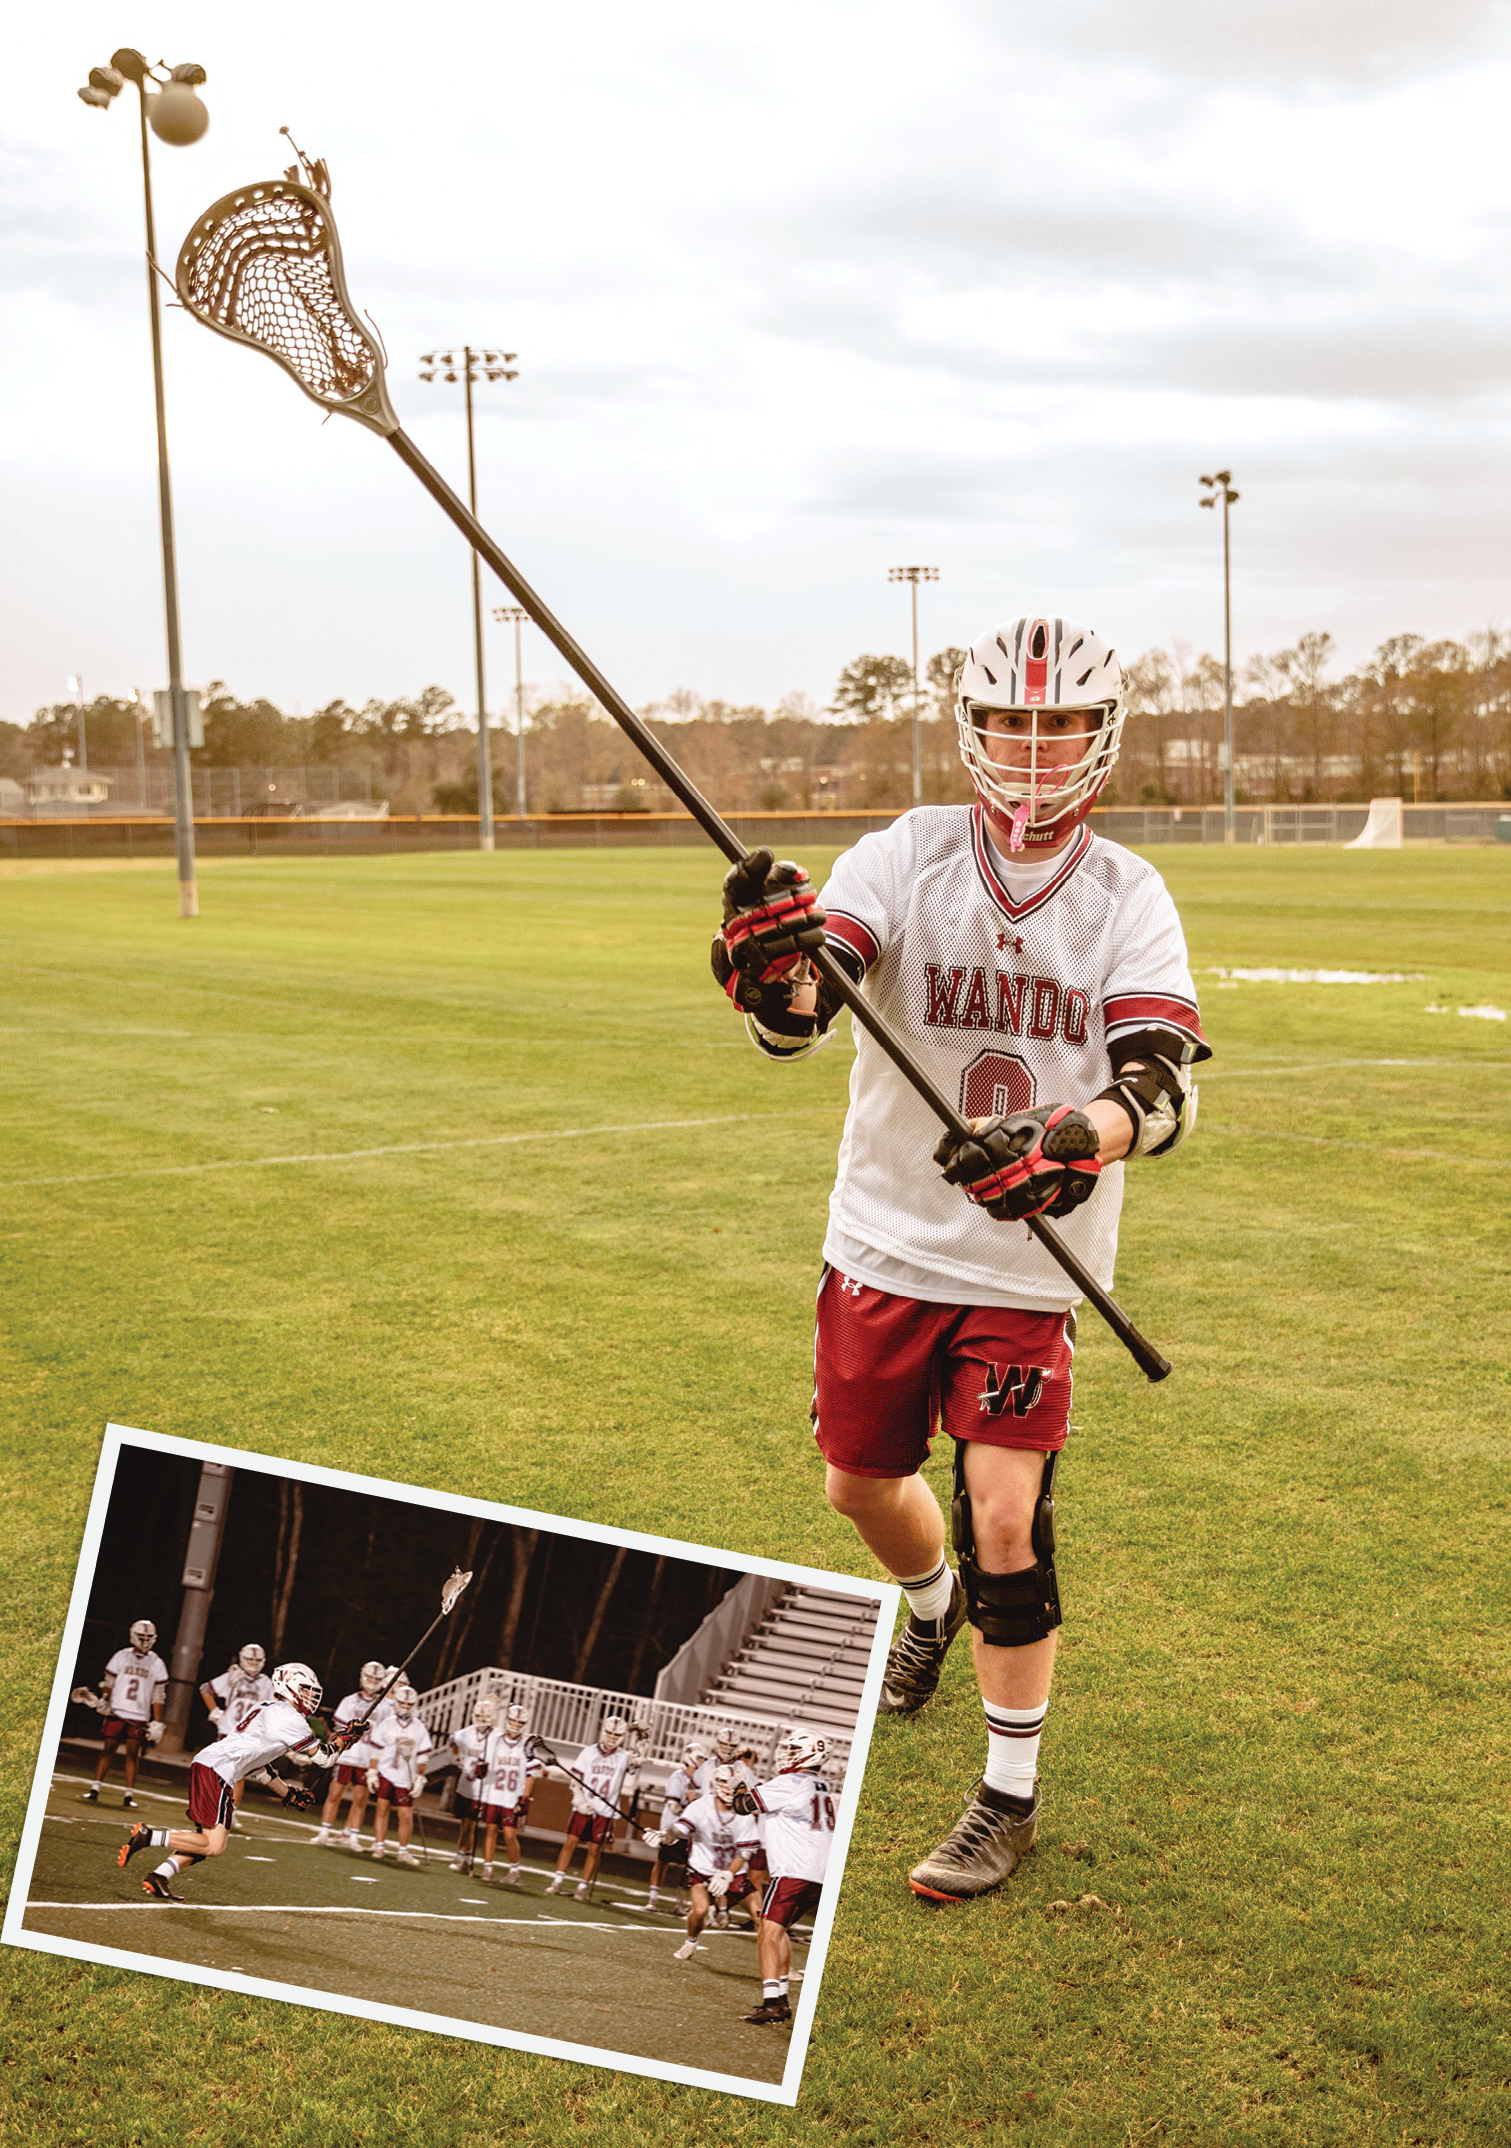 """It actually didn't hurt—I ran off the field and was ready to go back into the game,"" says Mount Pleasant teen Henry Maloney, who was surprised to learn he had an ACL tear. Almost one year later, and after undergoing reconstruction surgery, Henry is healed and back on the lacrosse field."